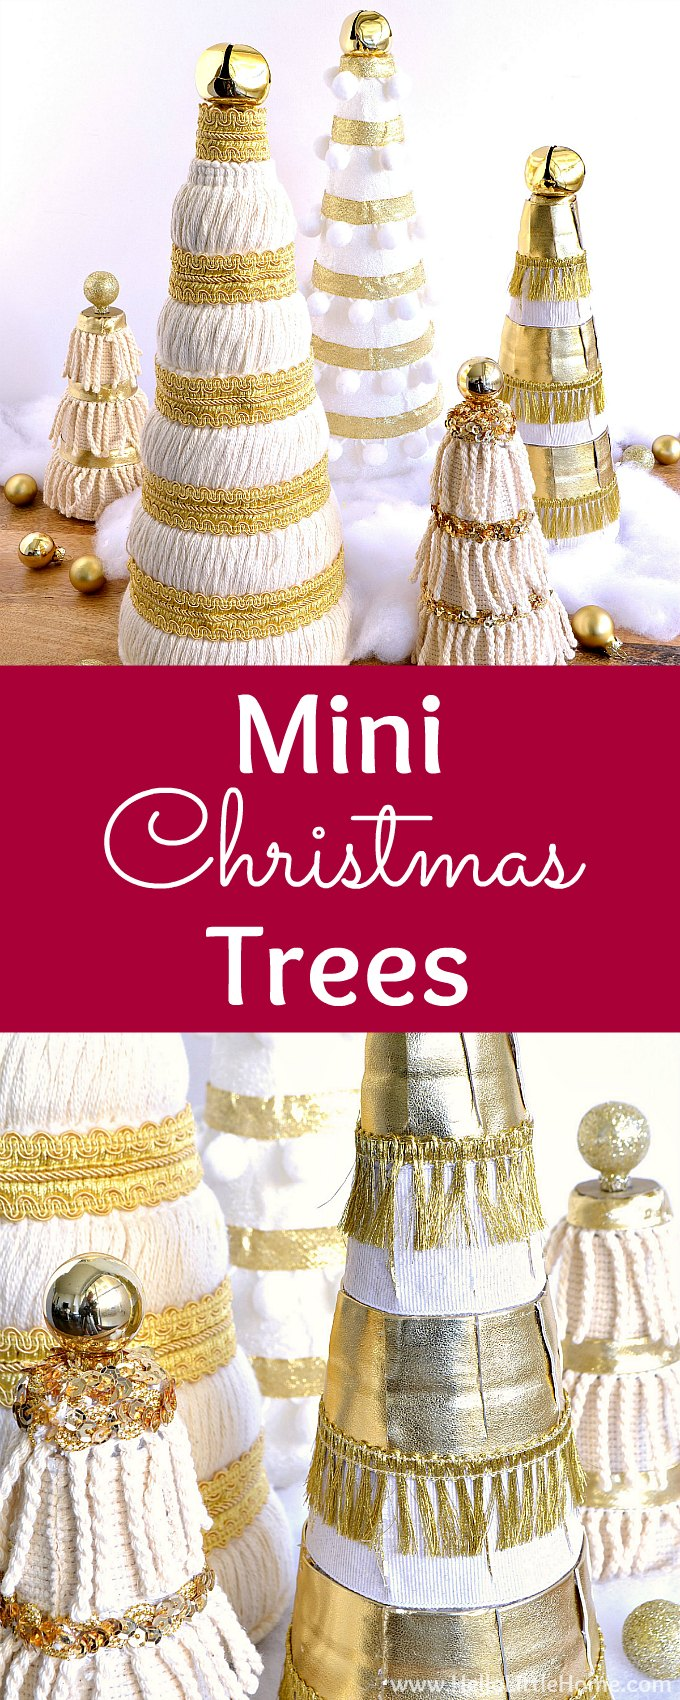 Diy mini christmas trees hello little home for Christmas tree decorations you can make at home